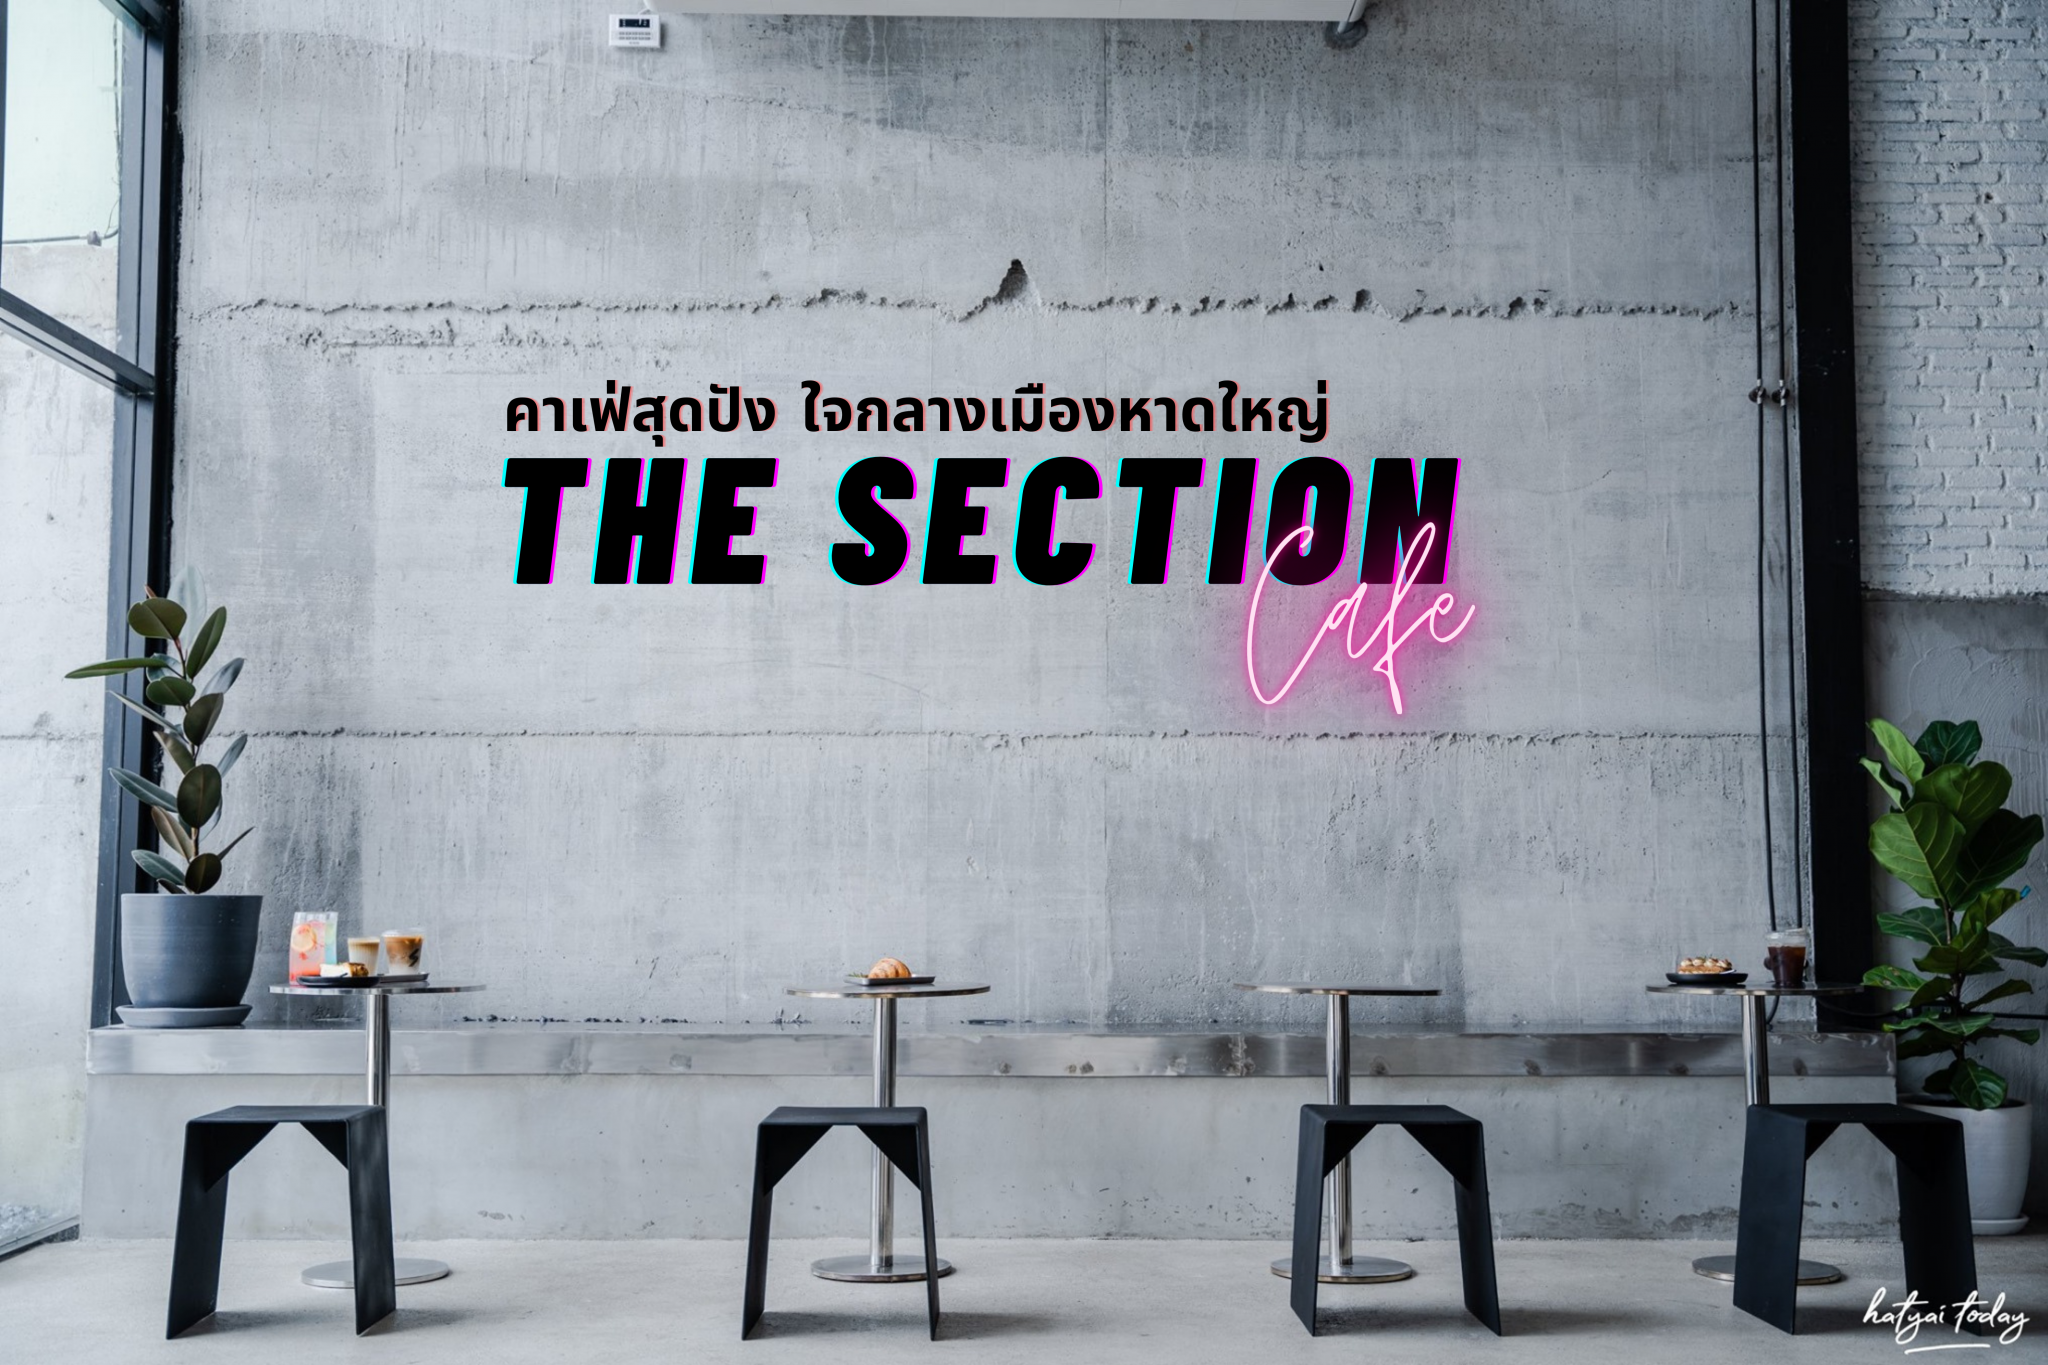 The Section cafe'